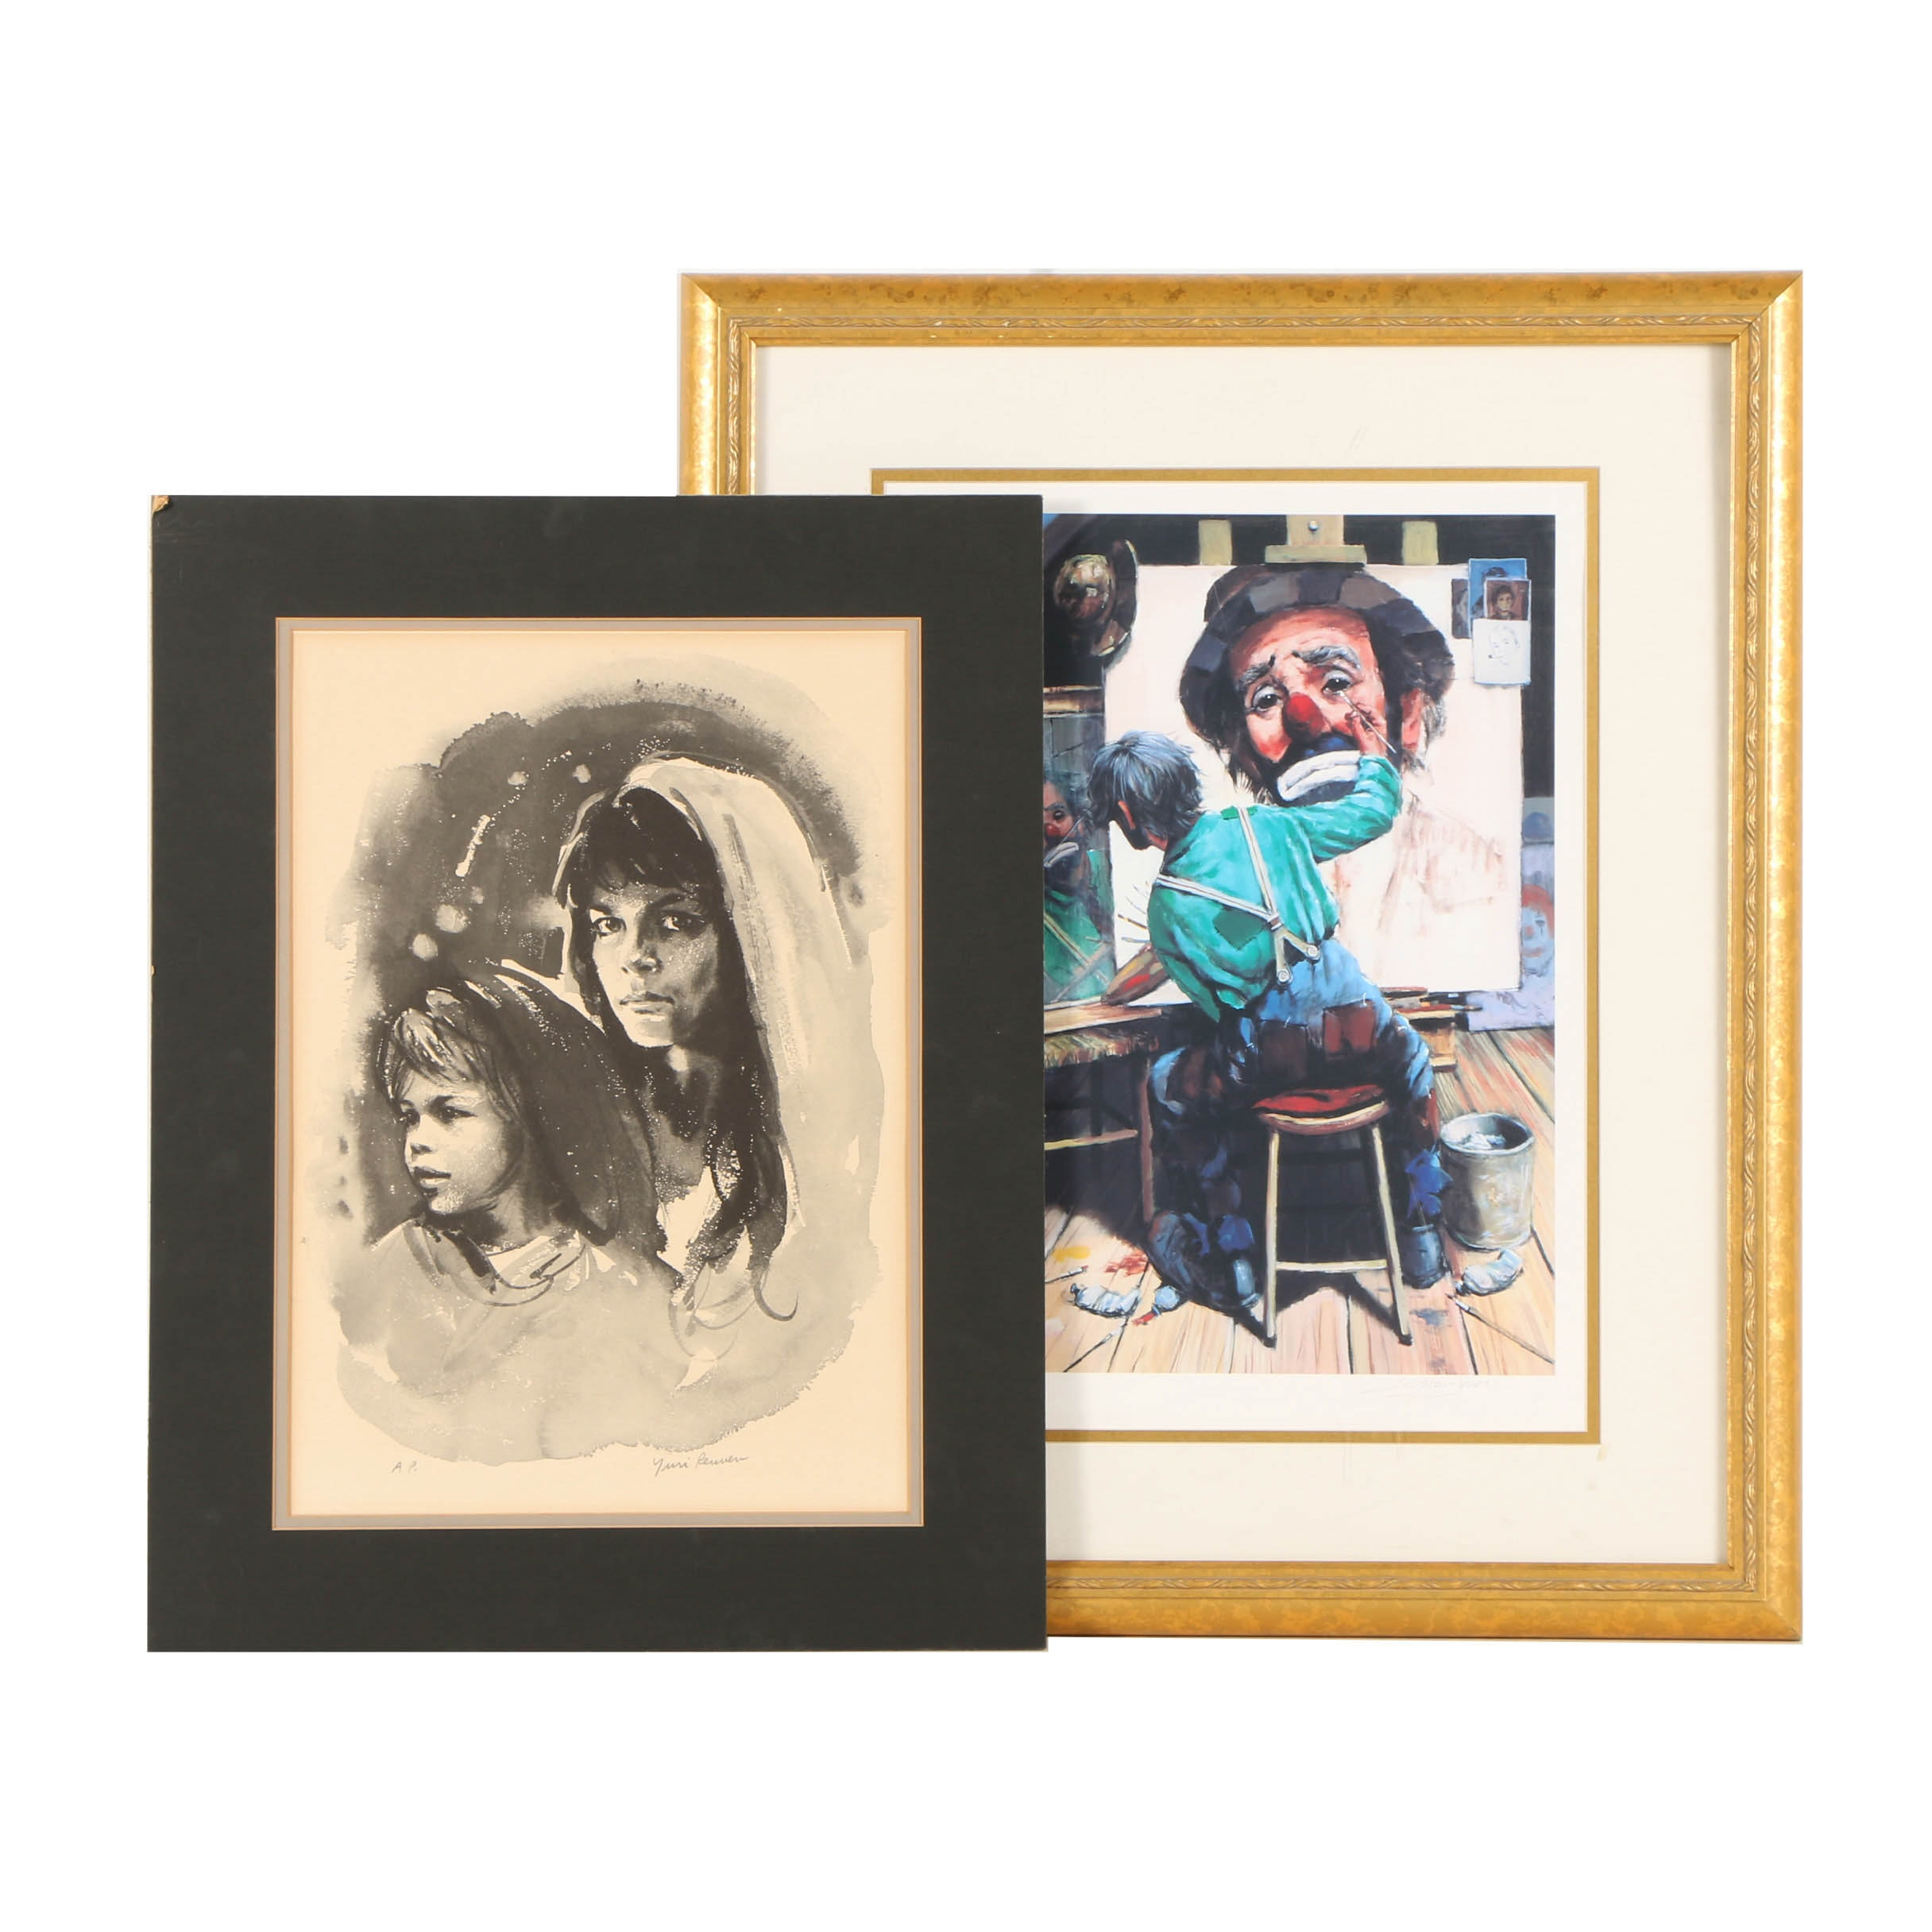 Artist's Proof Giclee Prints on Paper Including Barry Leighton-Jones